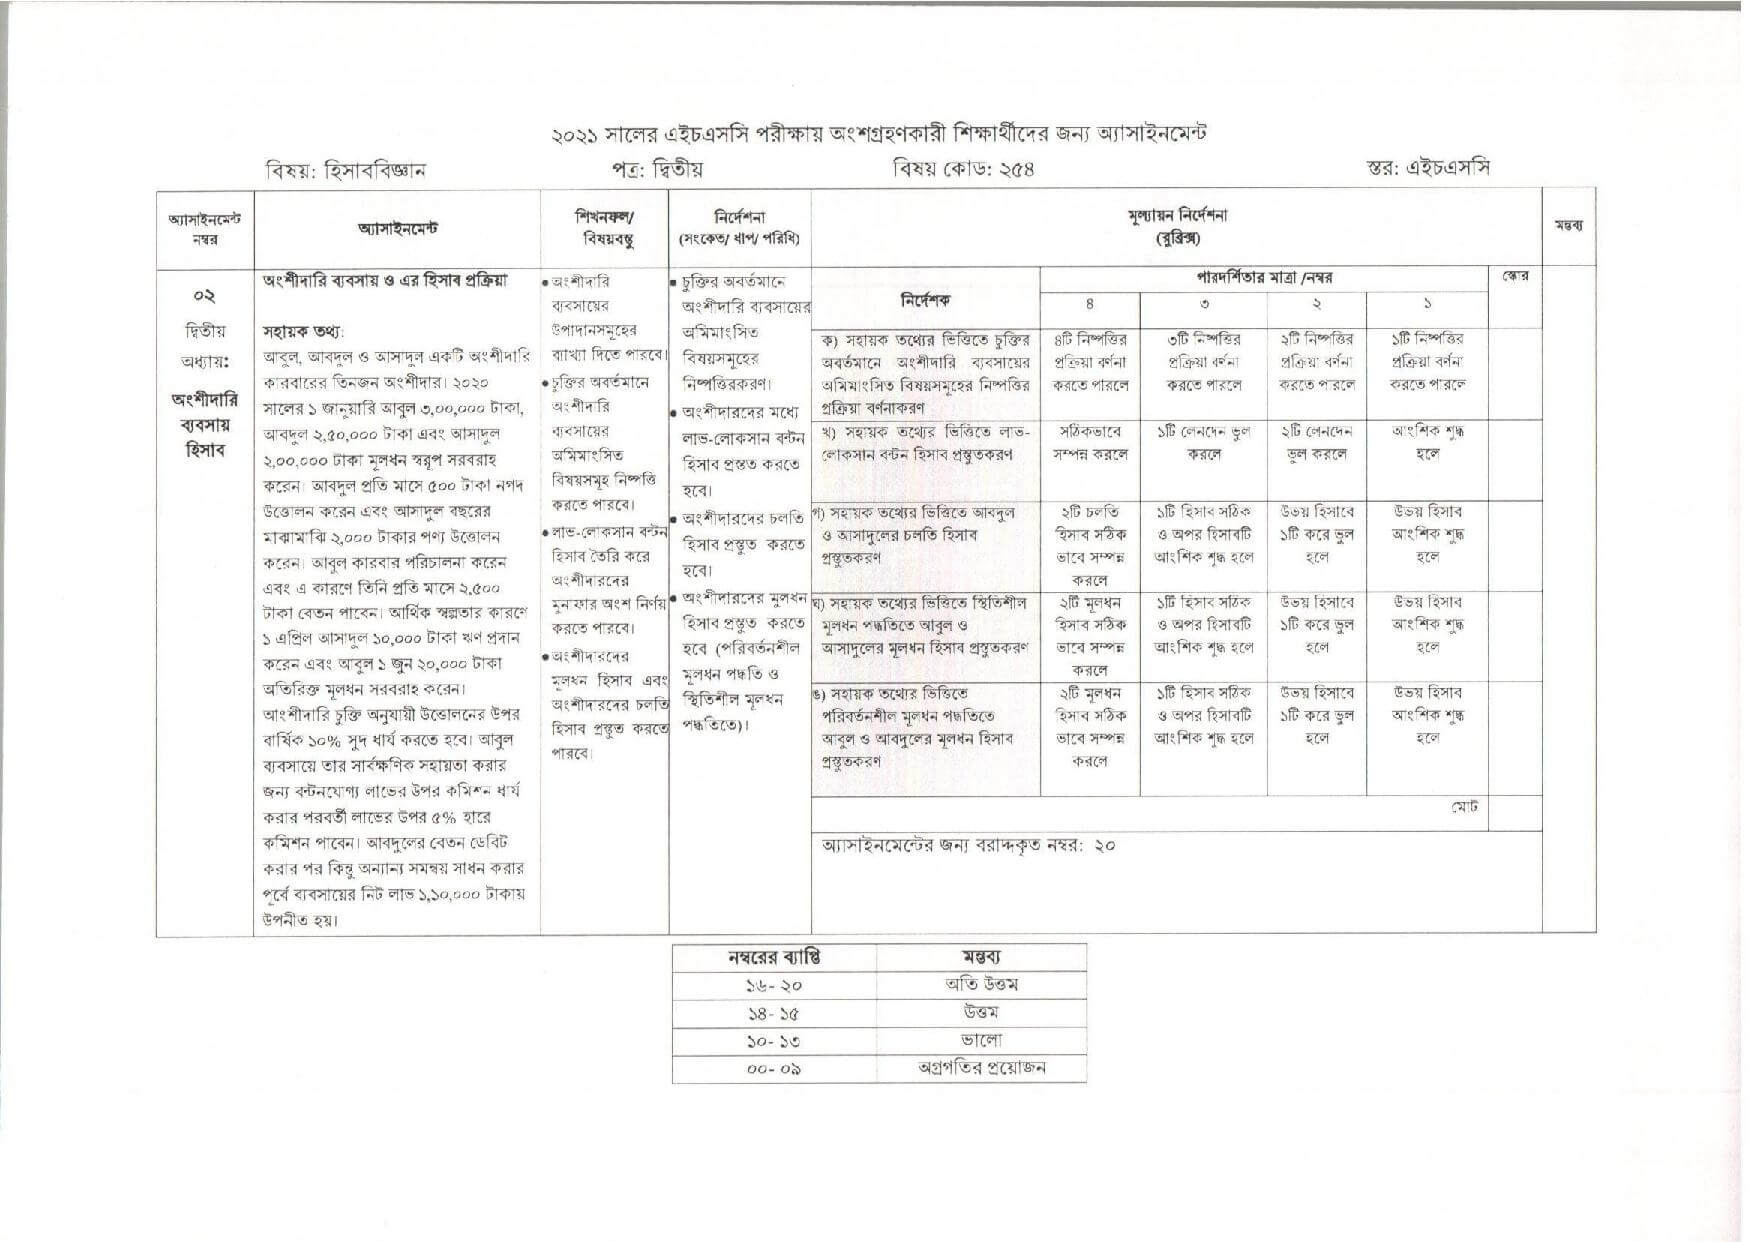 HSC Assignment 2021 Accounting